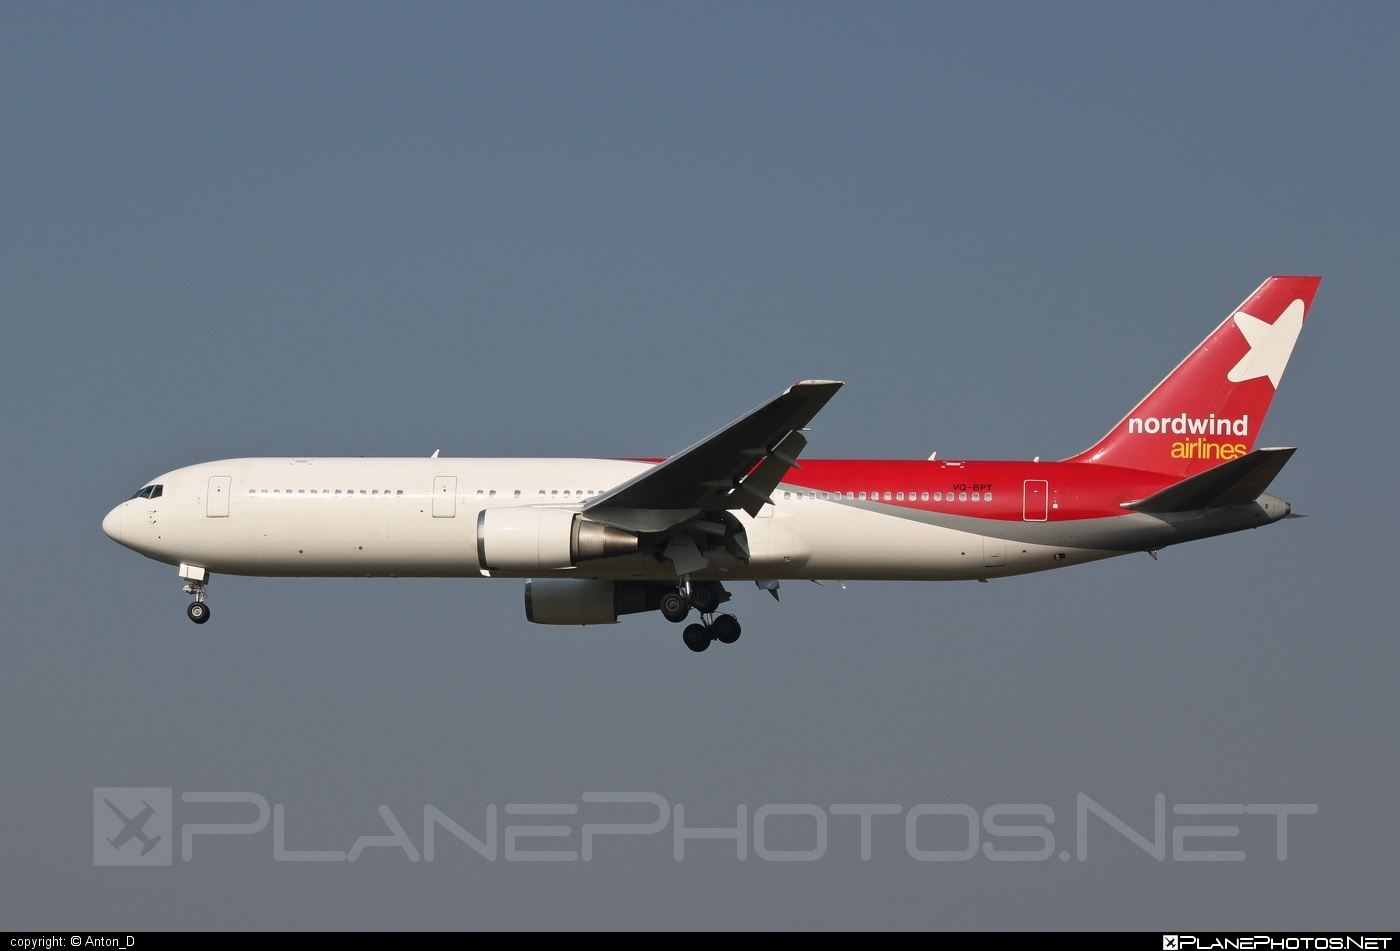 Boeing 767-300ER - VQ-BPT operated by Nordwind Airlines #b767 #b767er #boeing #boeing767